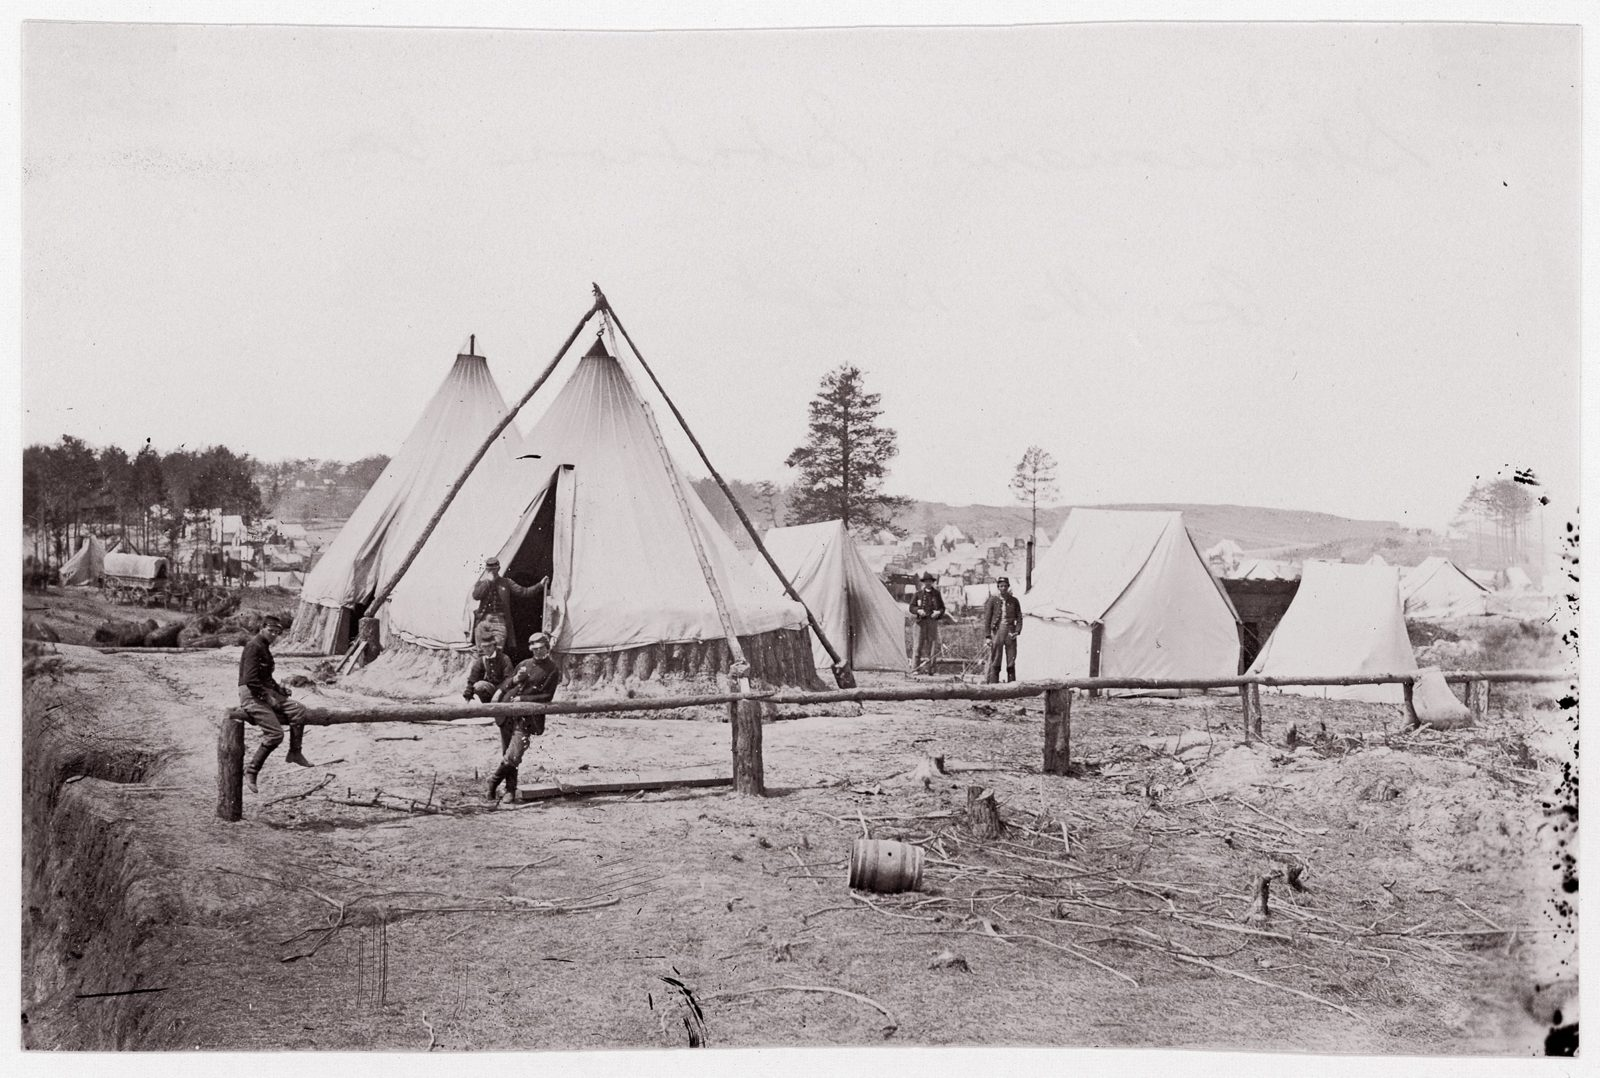 Stoneman's Station, Virginia. Quartermaster Dept.